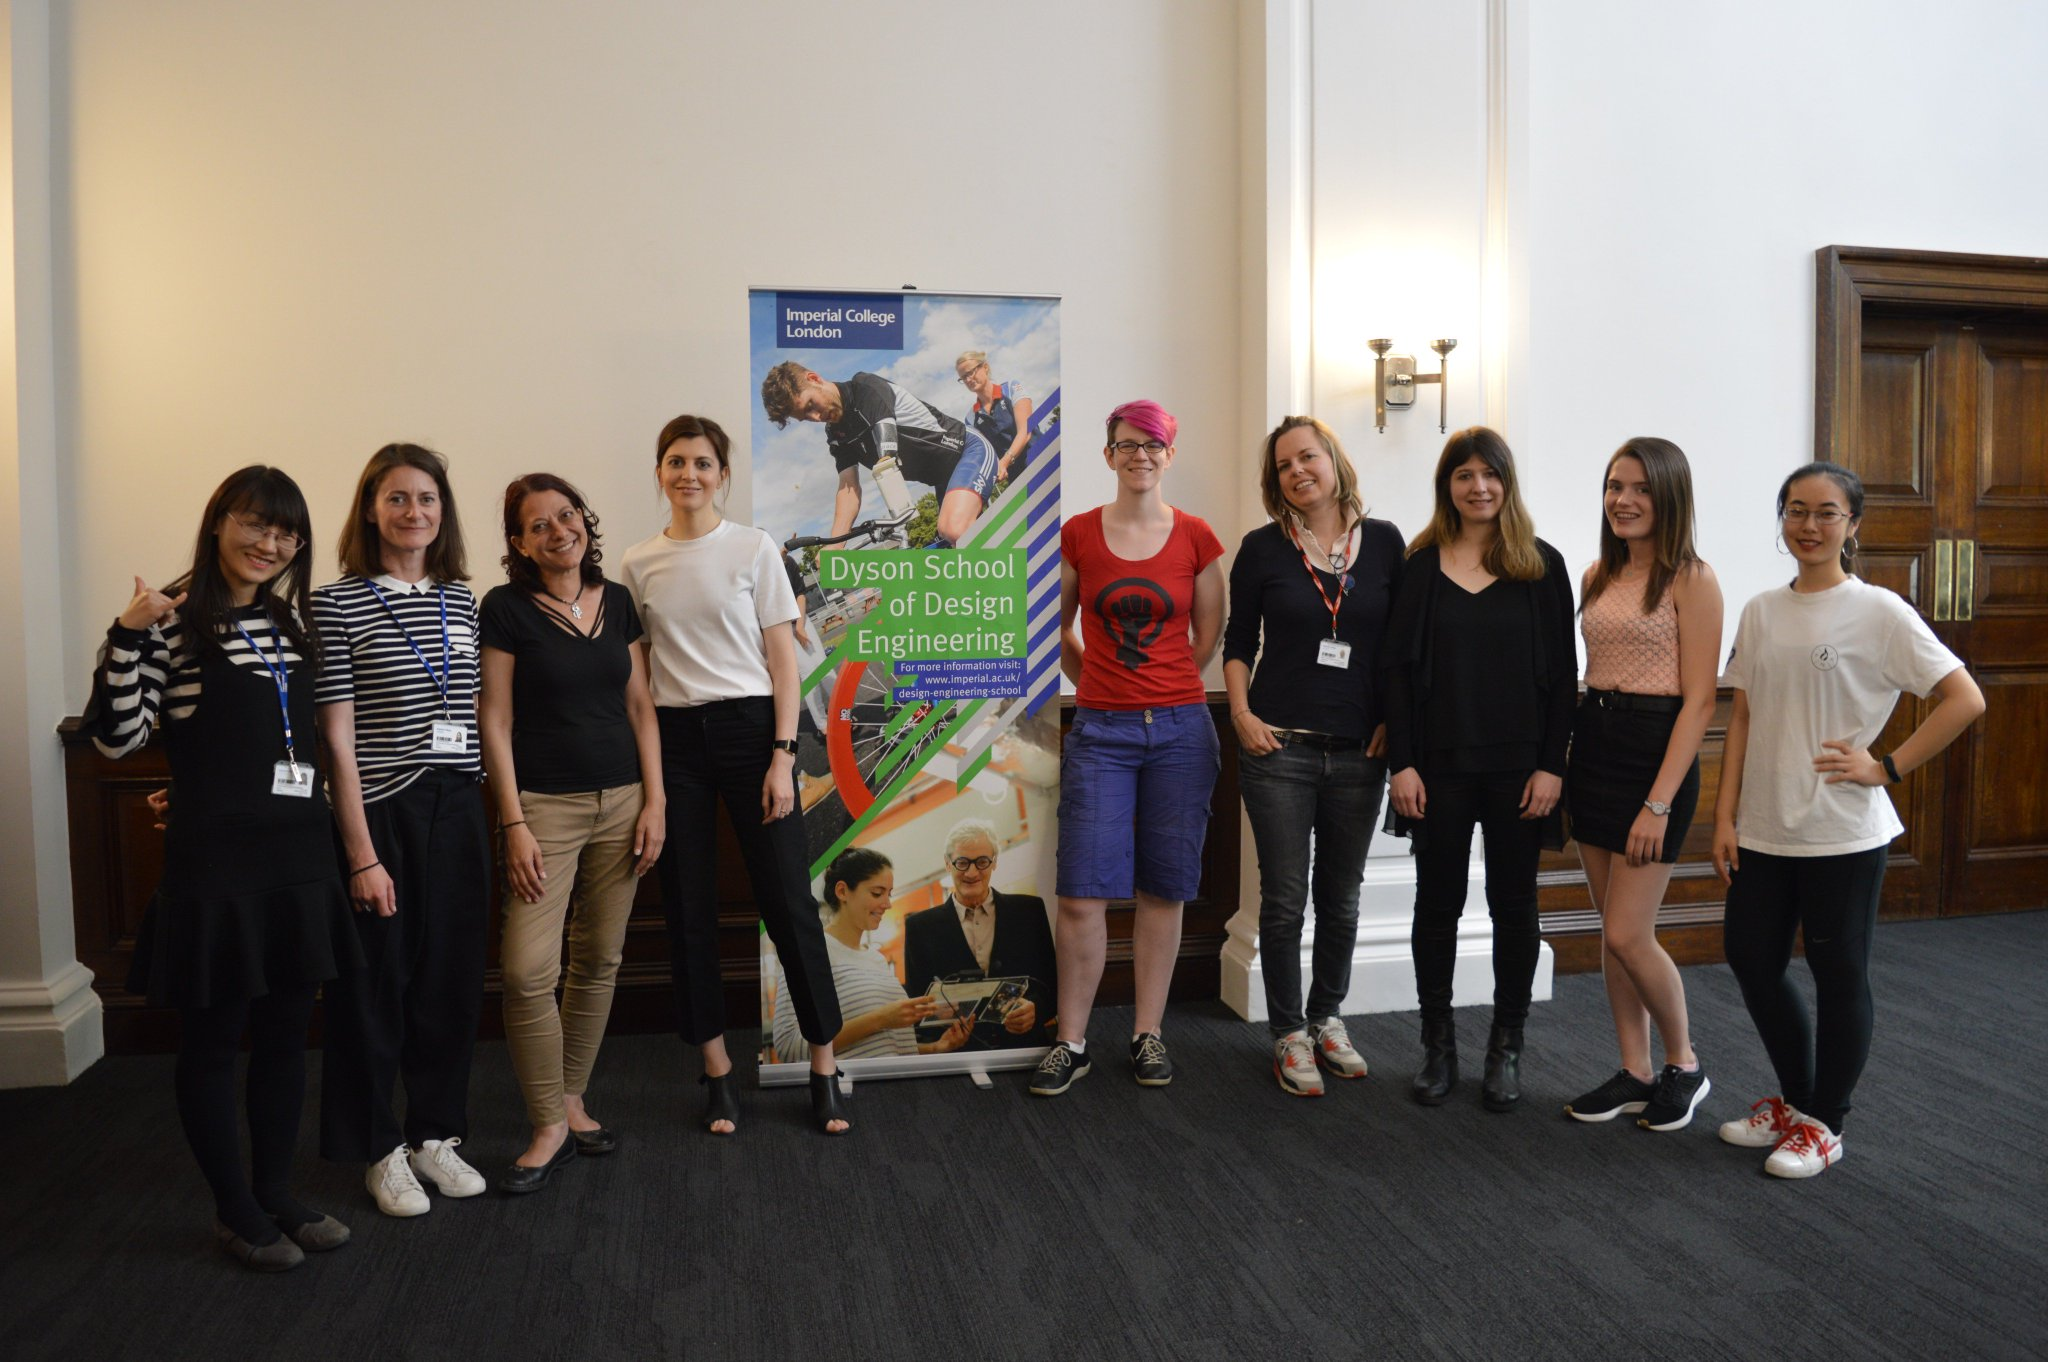 Dyson School Of Design Engineering On Twitter It S International Women In Engineering Day A Few Of Our Academic Staff And Researchers Celebrated In Our New Building On Friday Inwed1919 Inwed18 Raisingthebar Https T Co E9q5xa9ymy